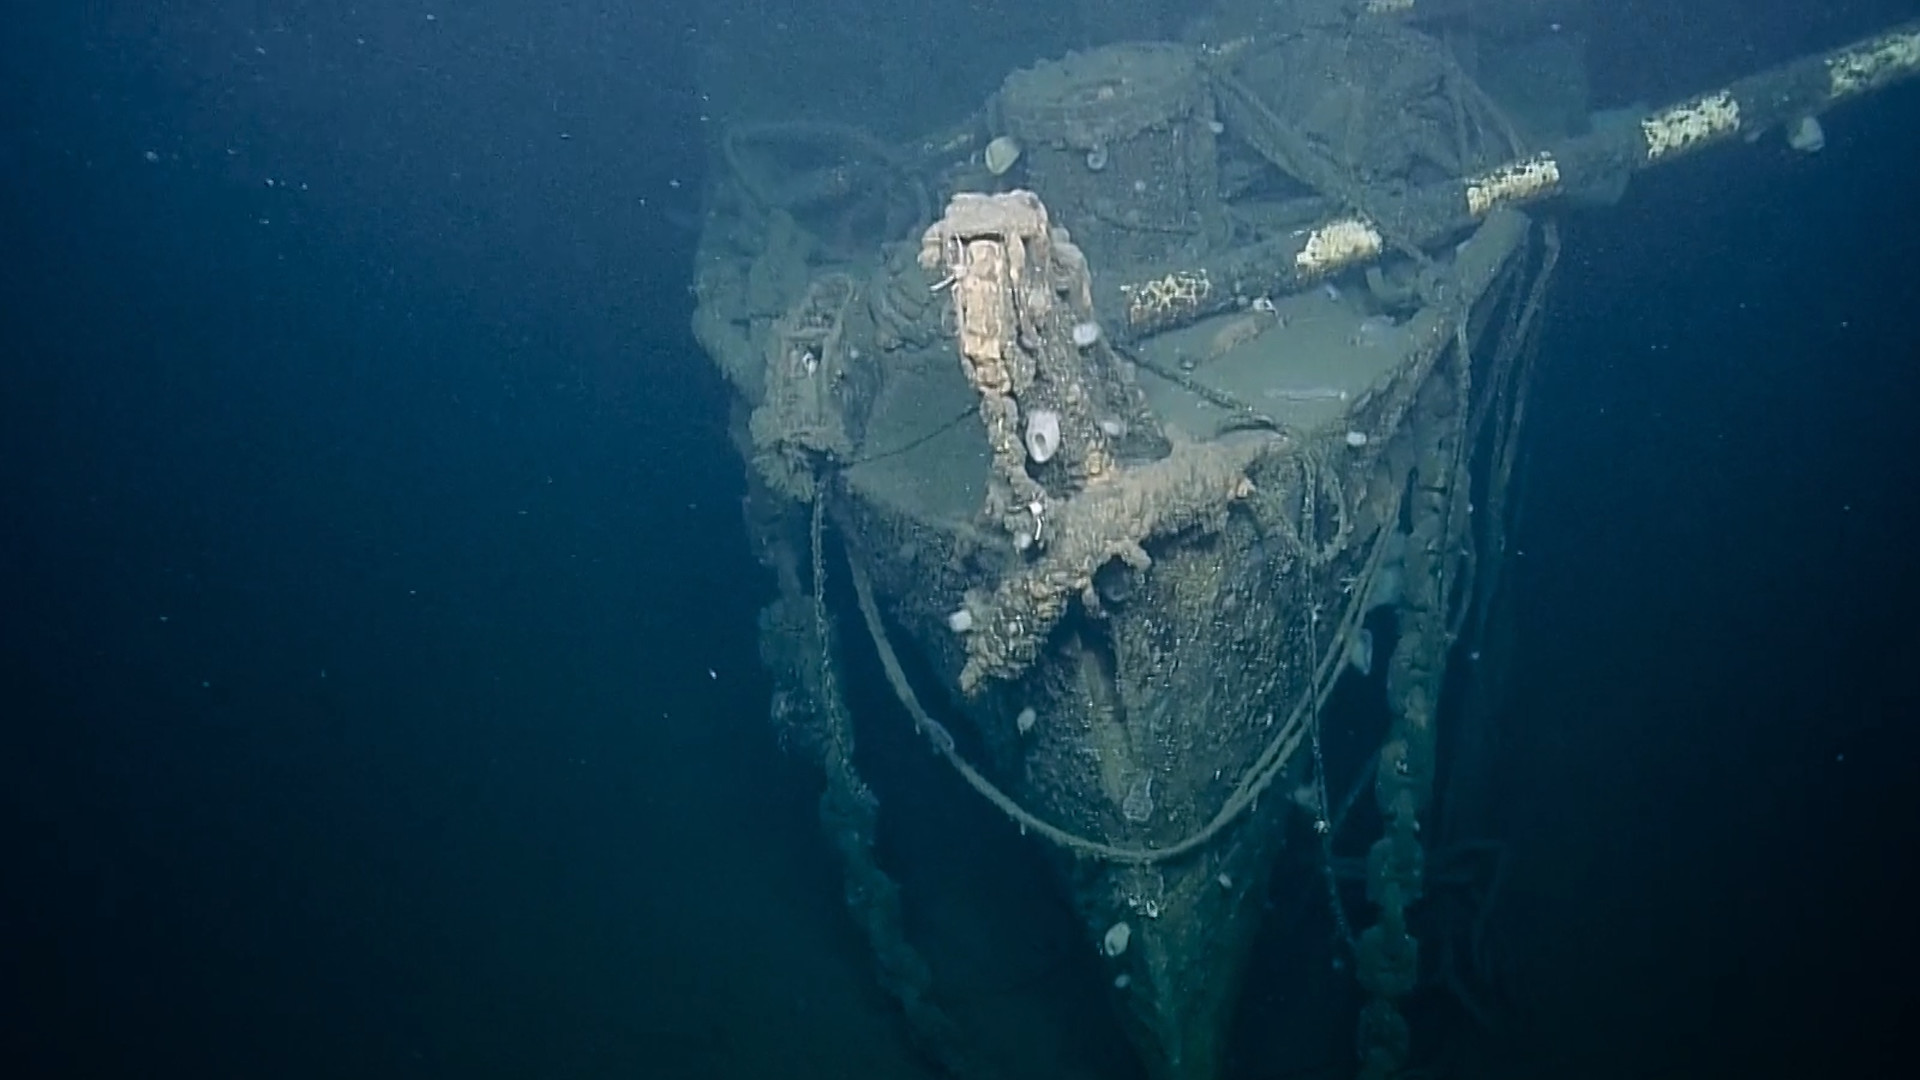 Join Scientists As They Explore The Sunken Uss